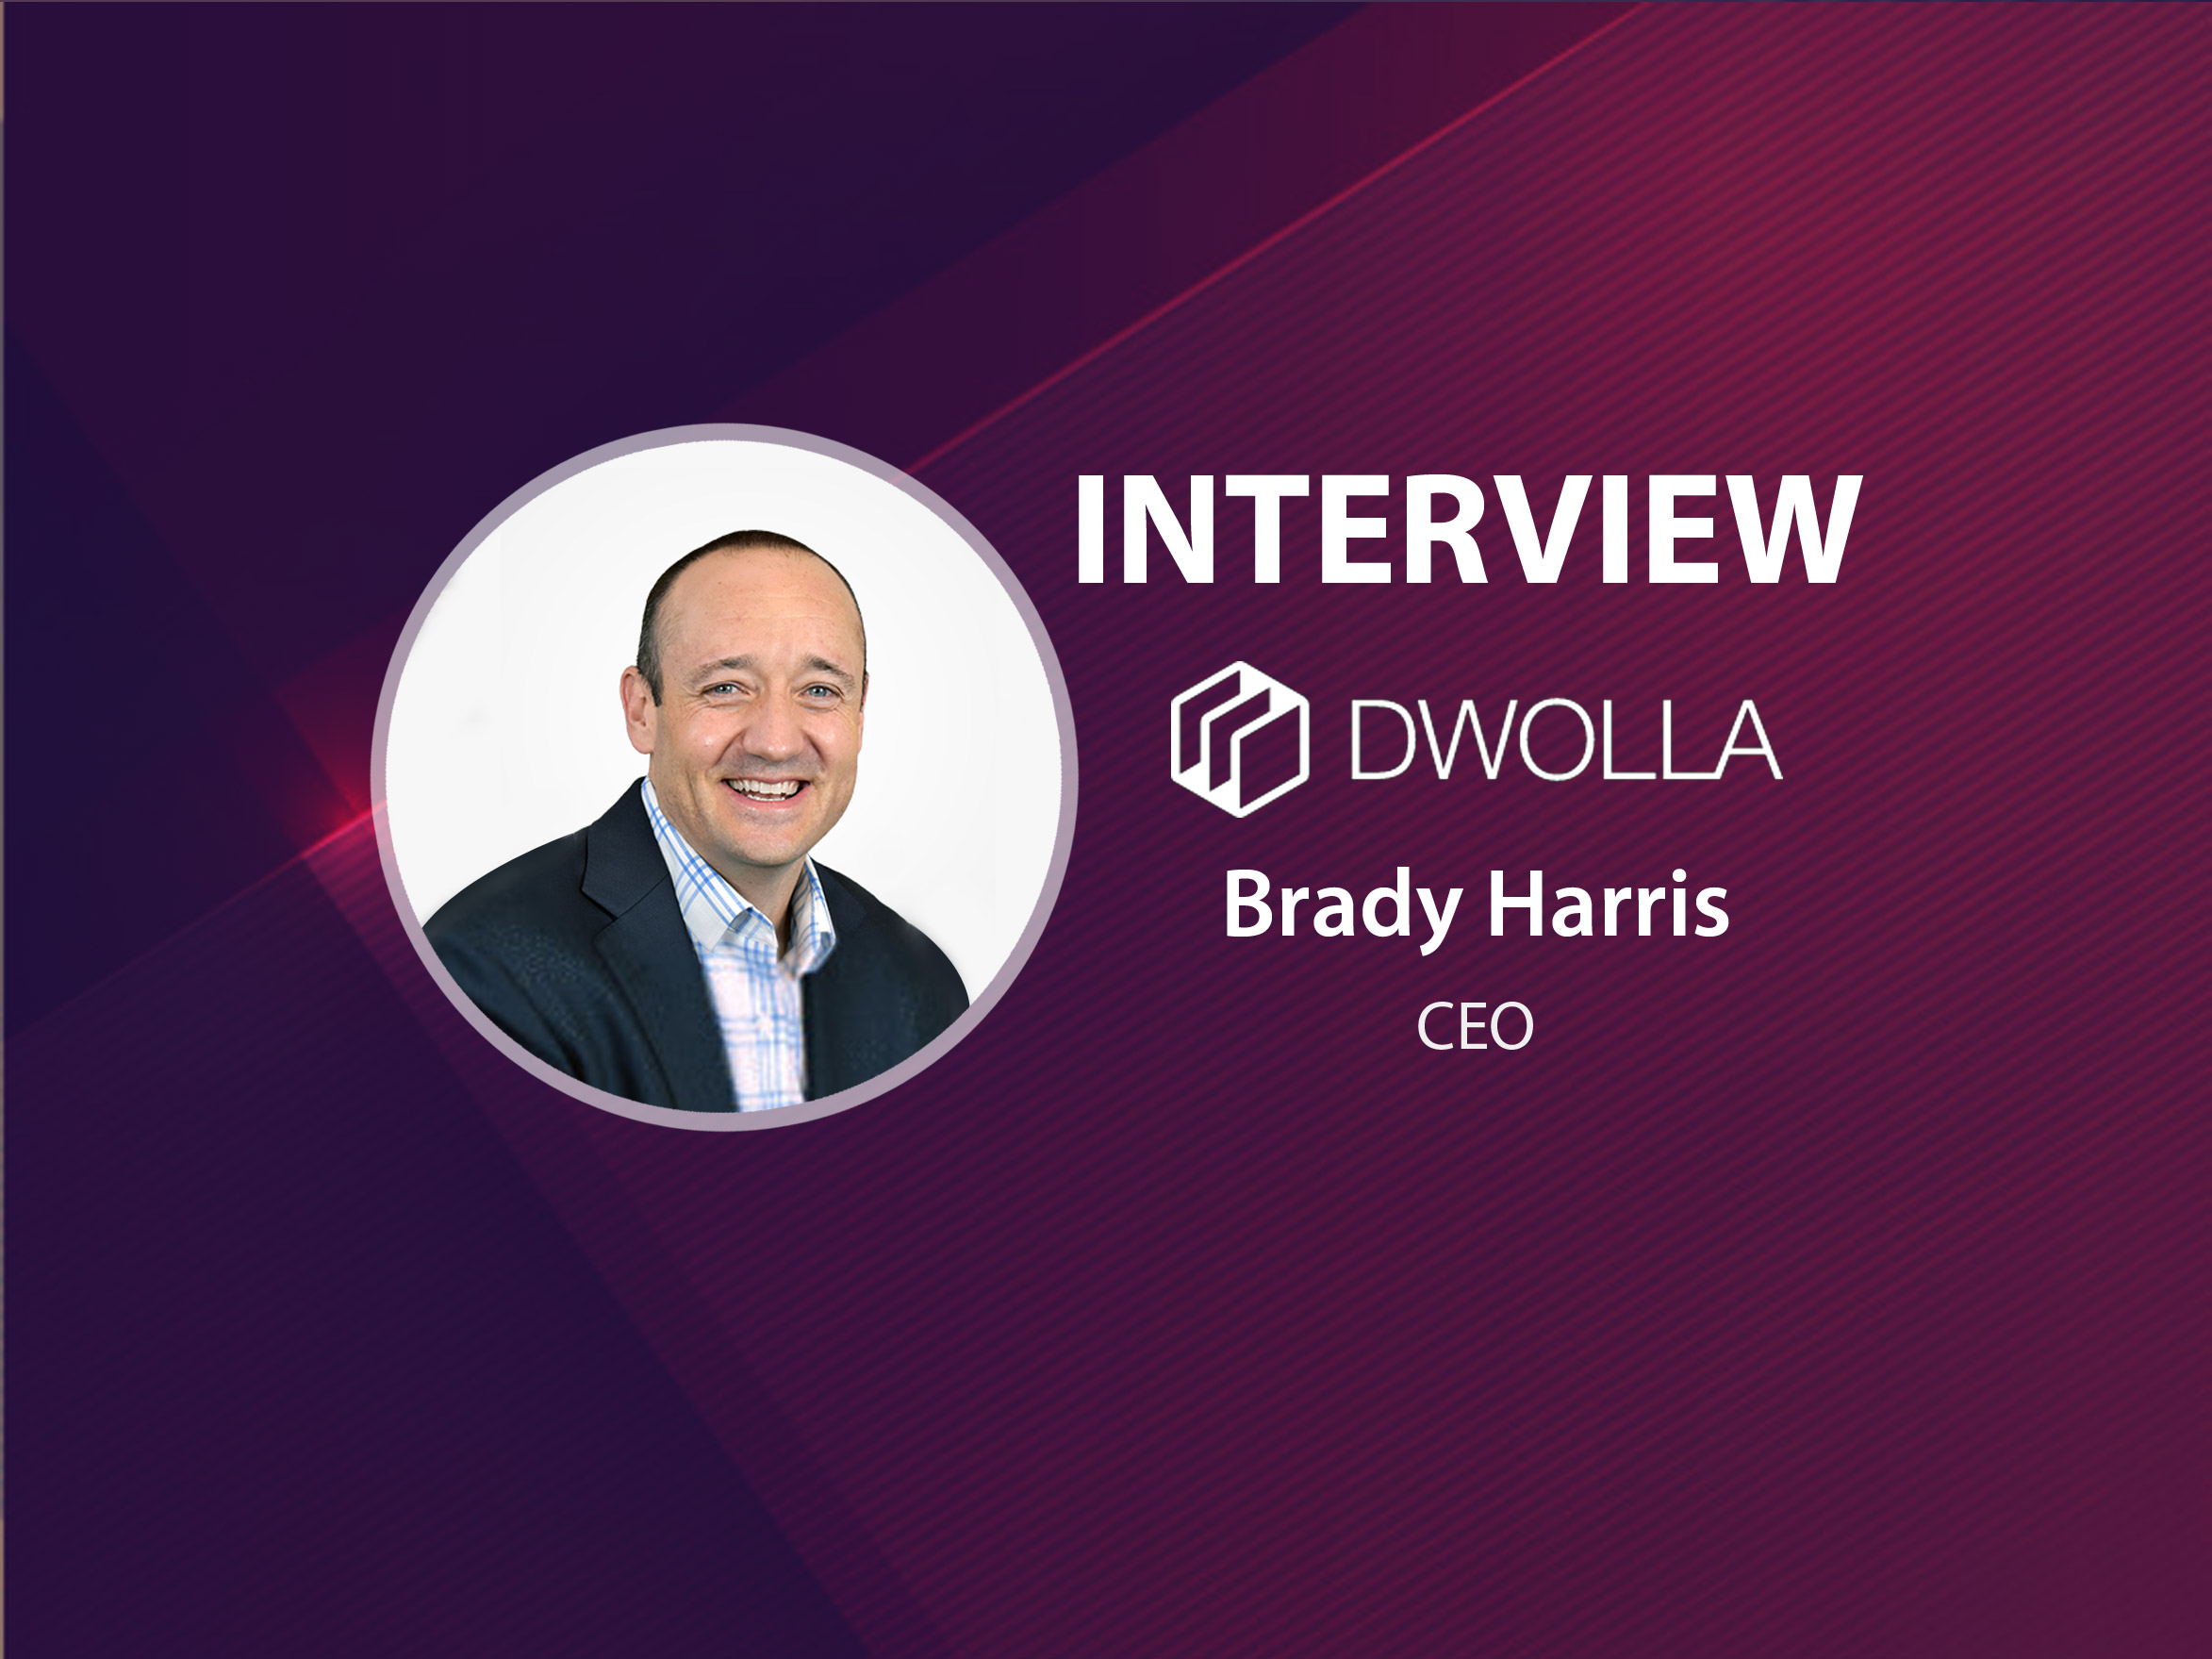 GlobalFintechSeries Interview with Brady Harris, CEO at Dwolla